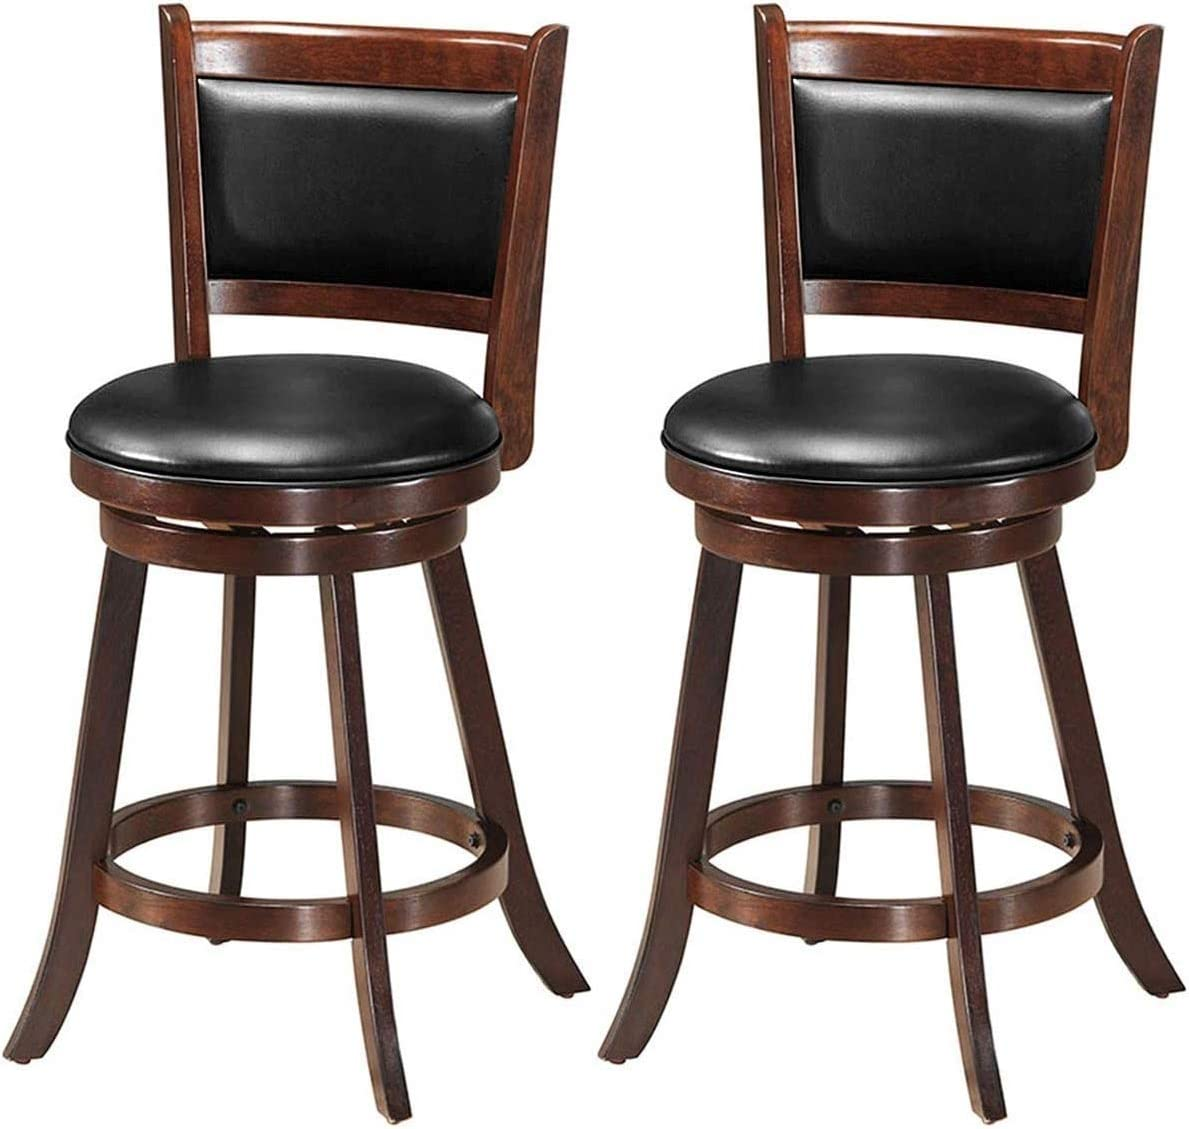 Sale price HAPPYGRILL Barstools Set mart of 2 Wooden Swivel Counter Back Height